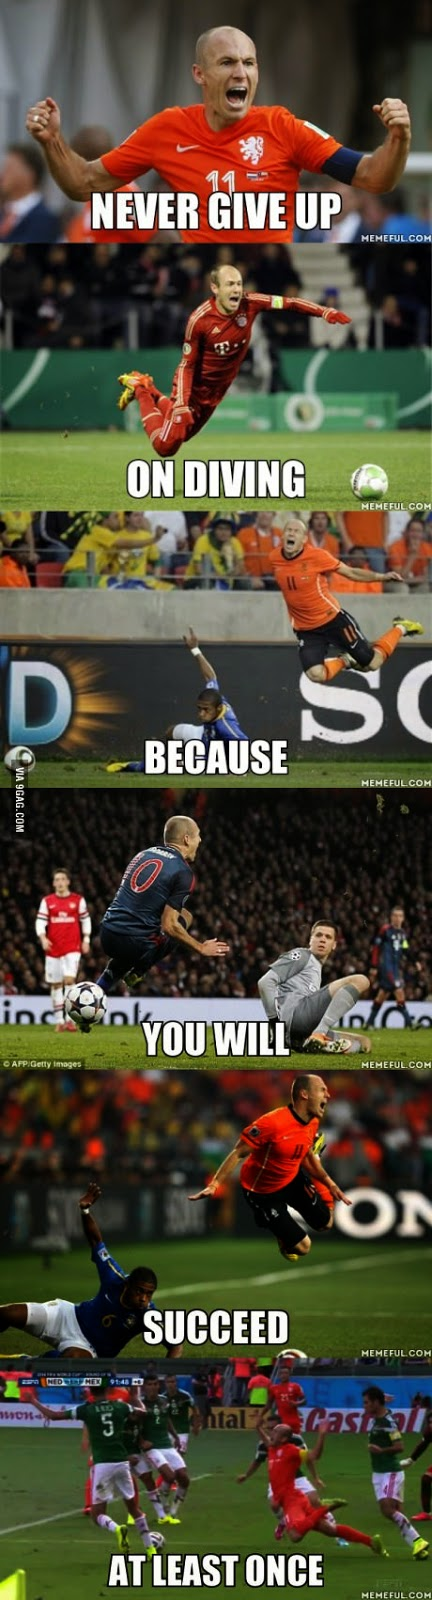 Never give up diving